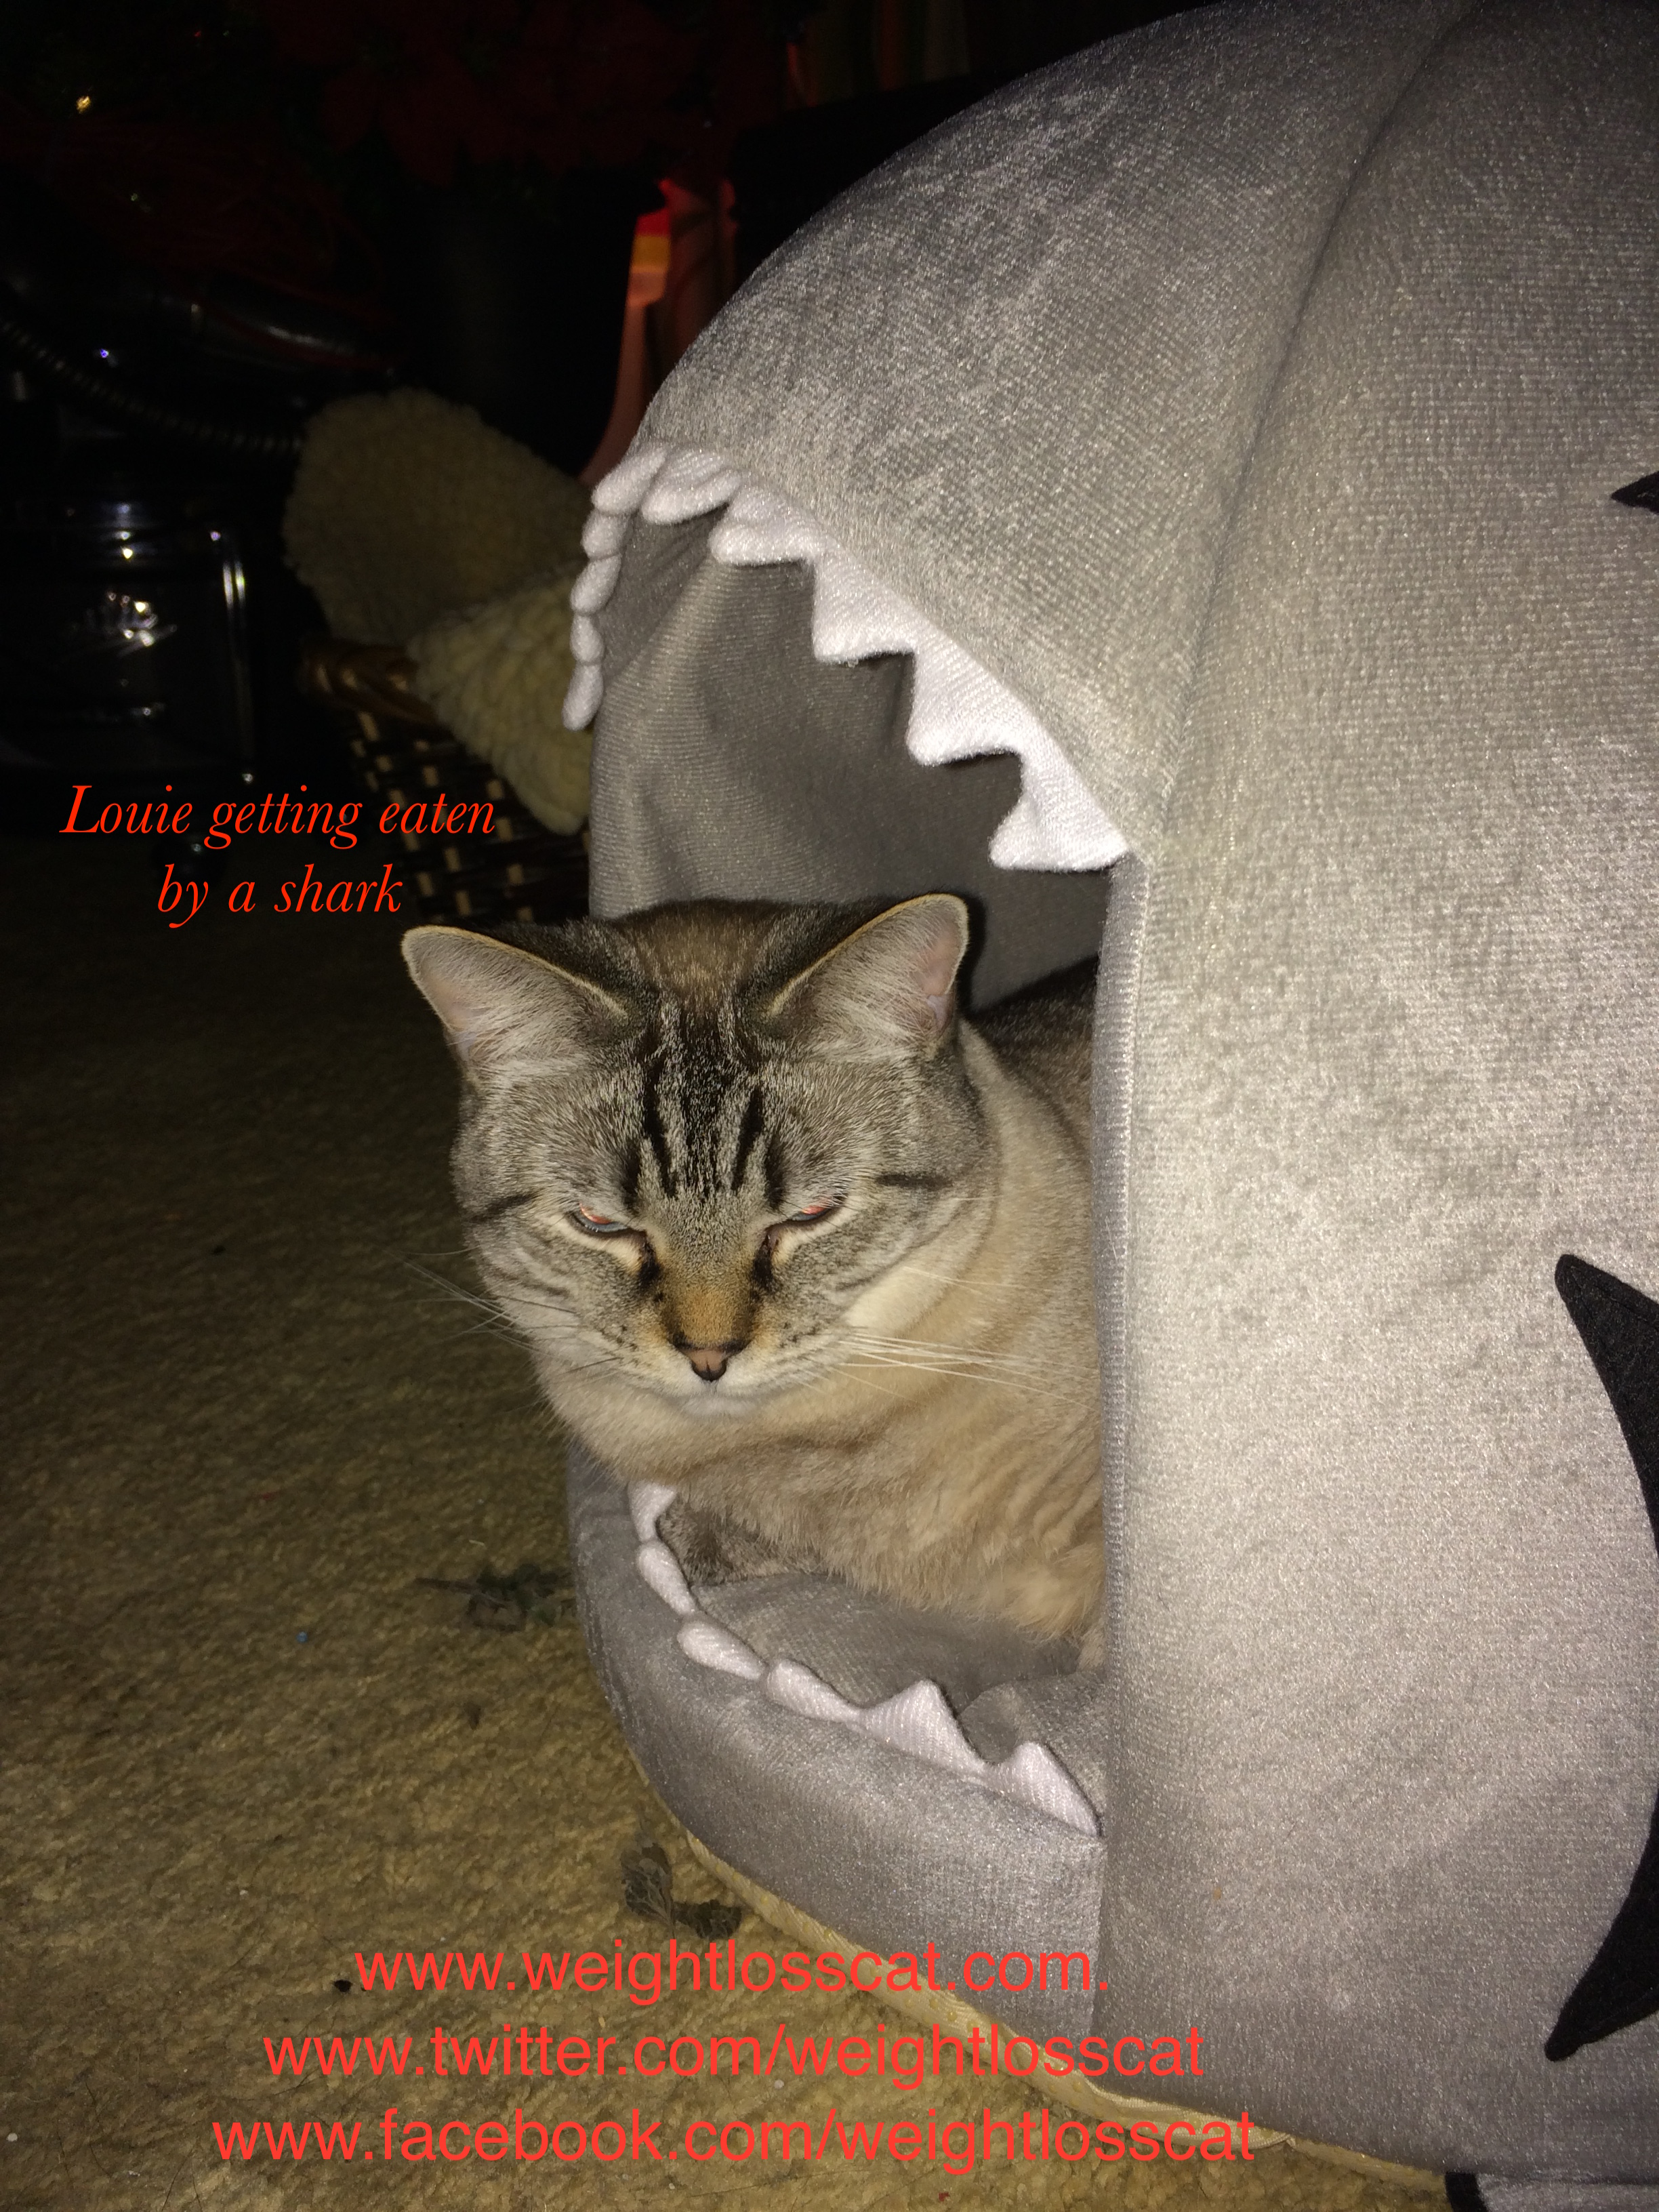 Louie getting eaten by a shark